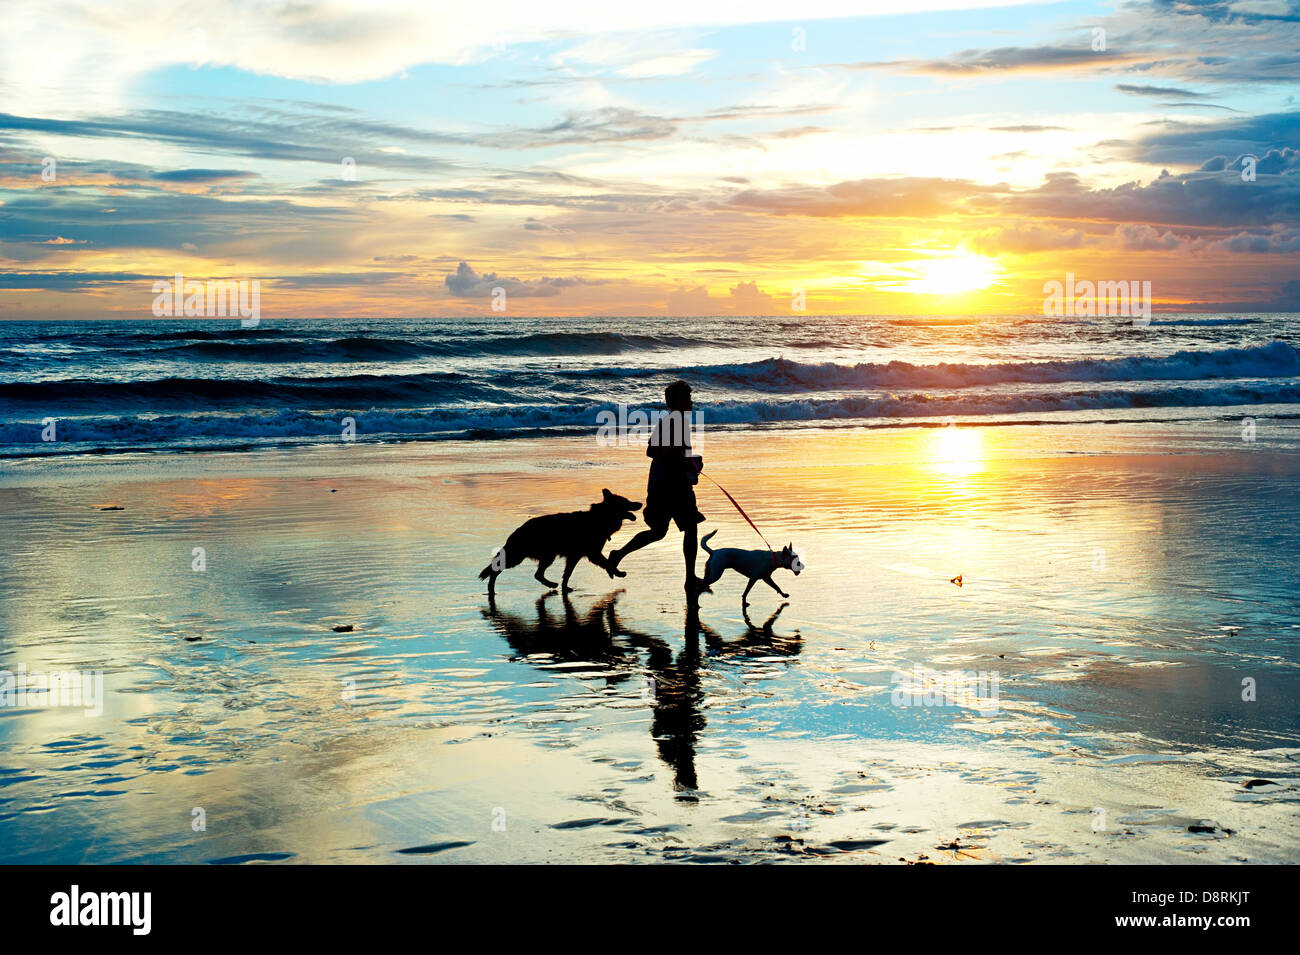 Man with a dogs running on the beach at sunset. Bali island, Indonesia Stock Foto